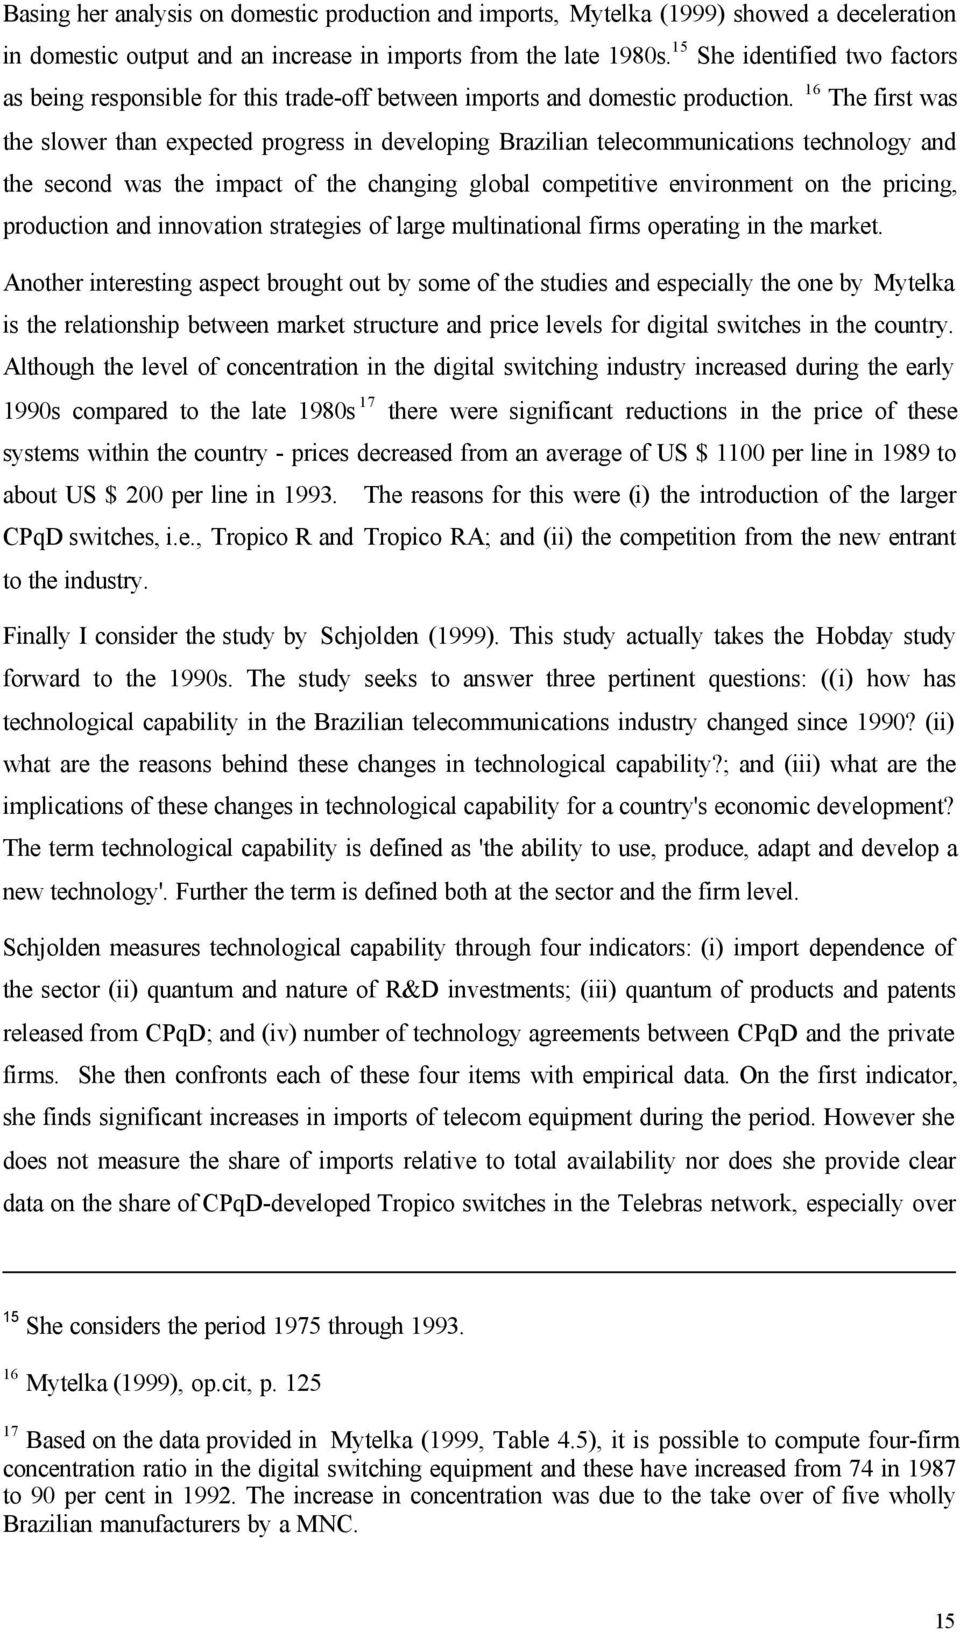 16 The first was the slower than expected progress in developing Brazilian telecommunications technology and the second was the impact of the changing global competitive environment on the pricing,